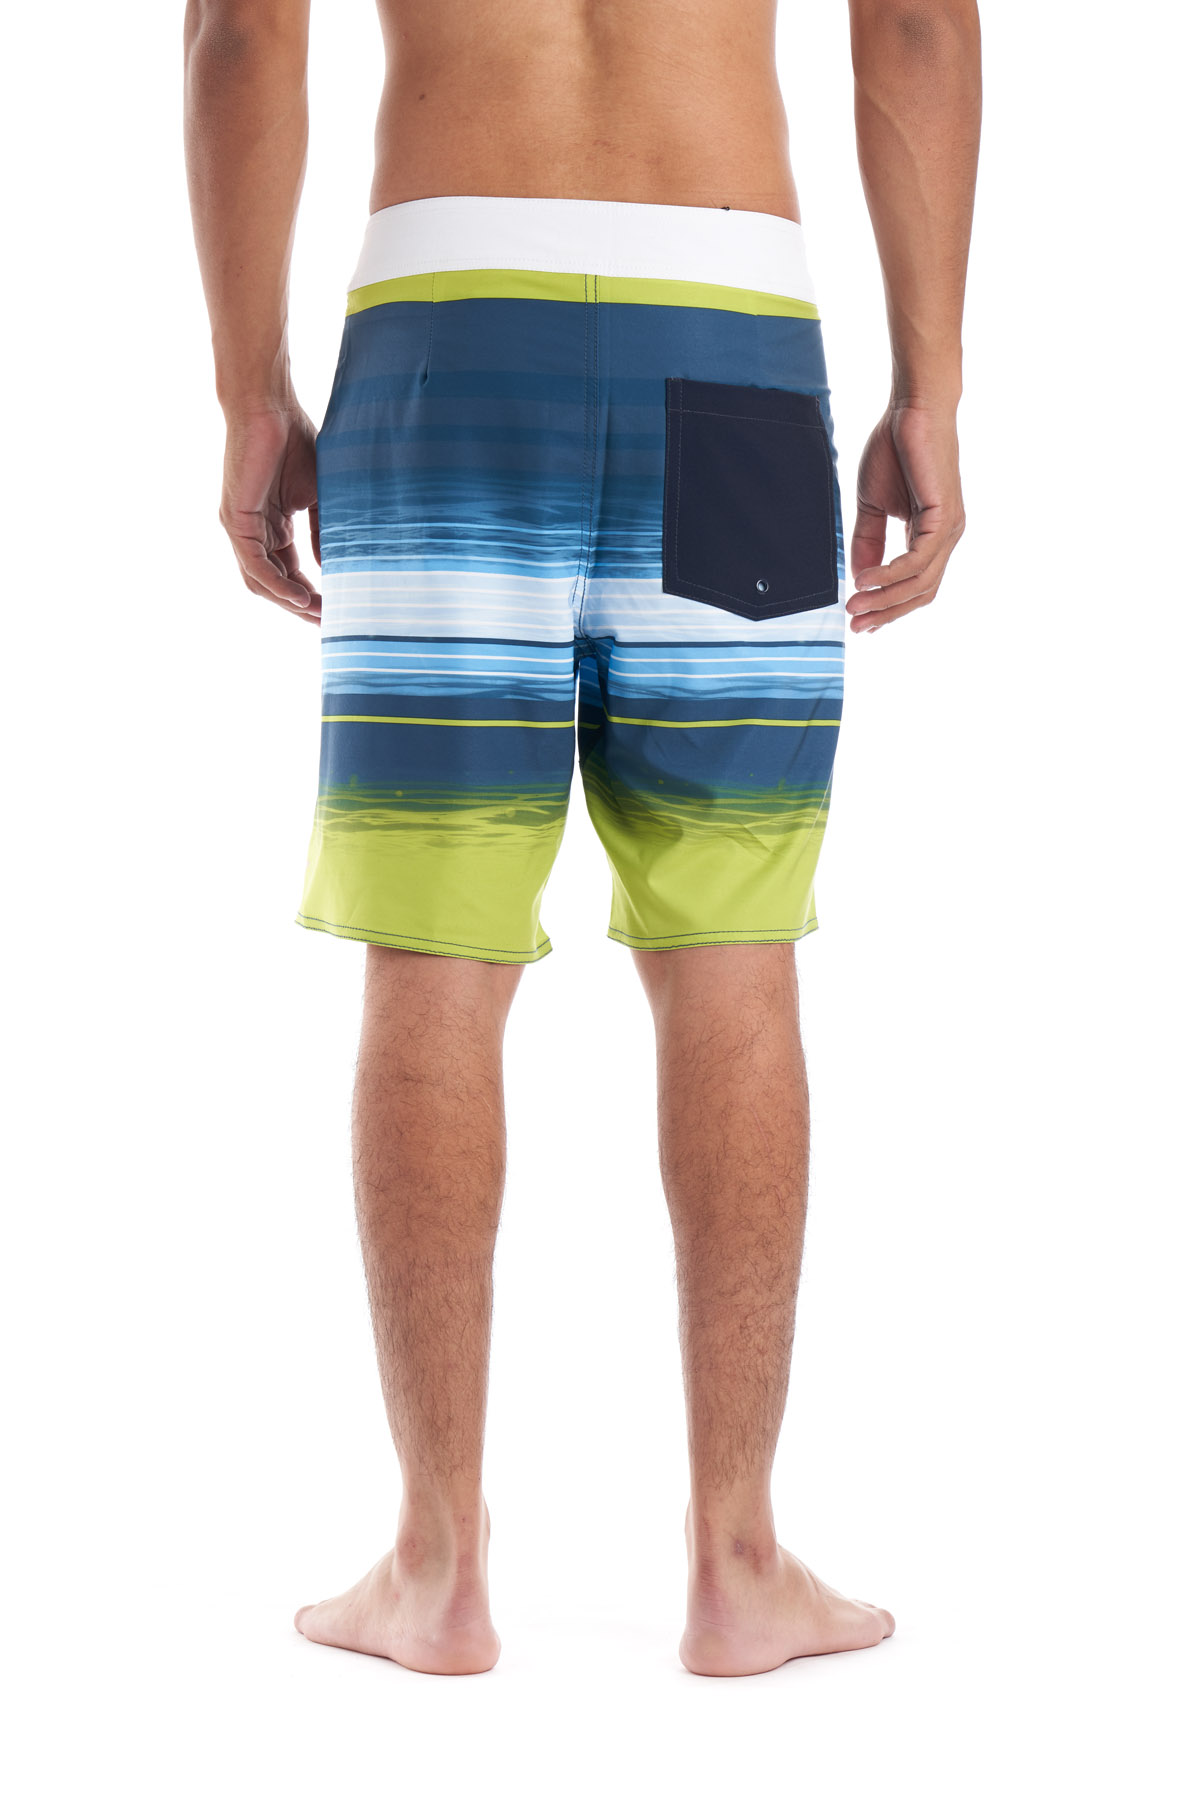 Alpine-Swiss-Mens-Swim-Shorts-Beach-Trunks-Surf-Quick-Dry-Boardshorts-Swimwear